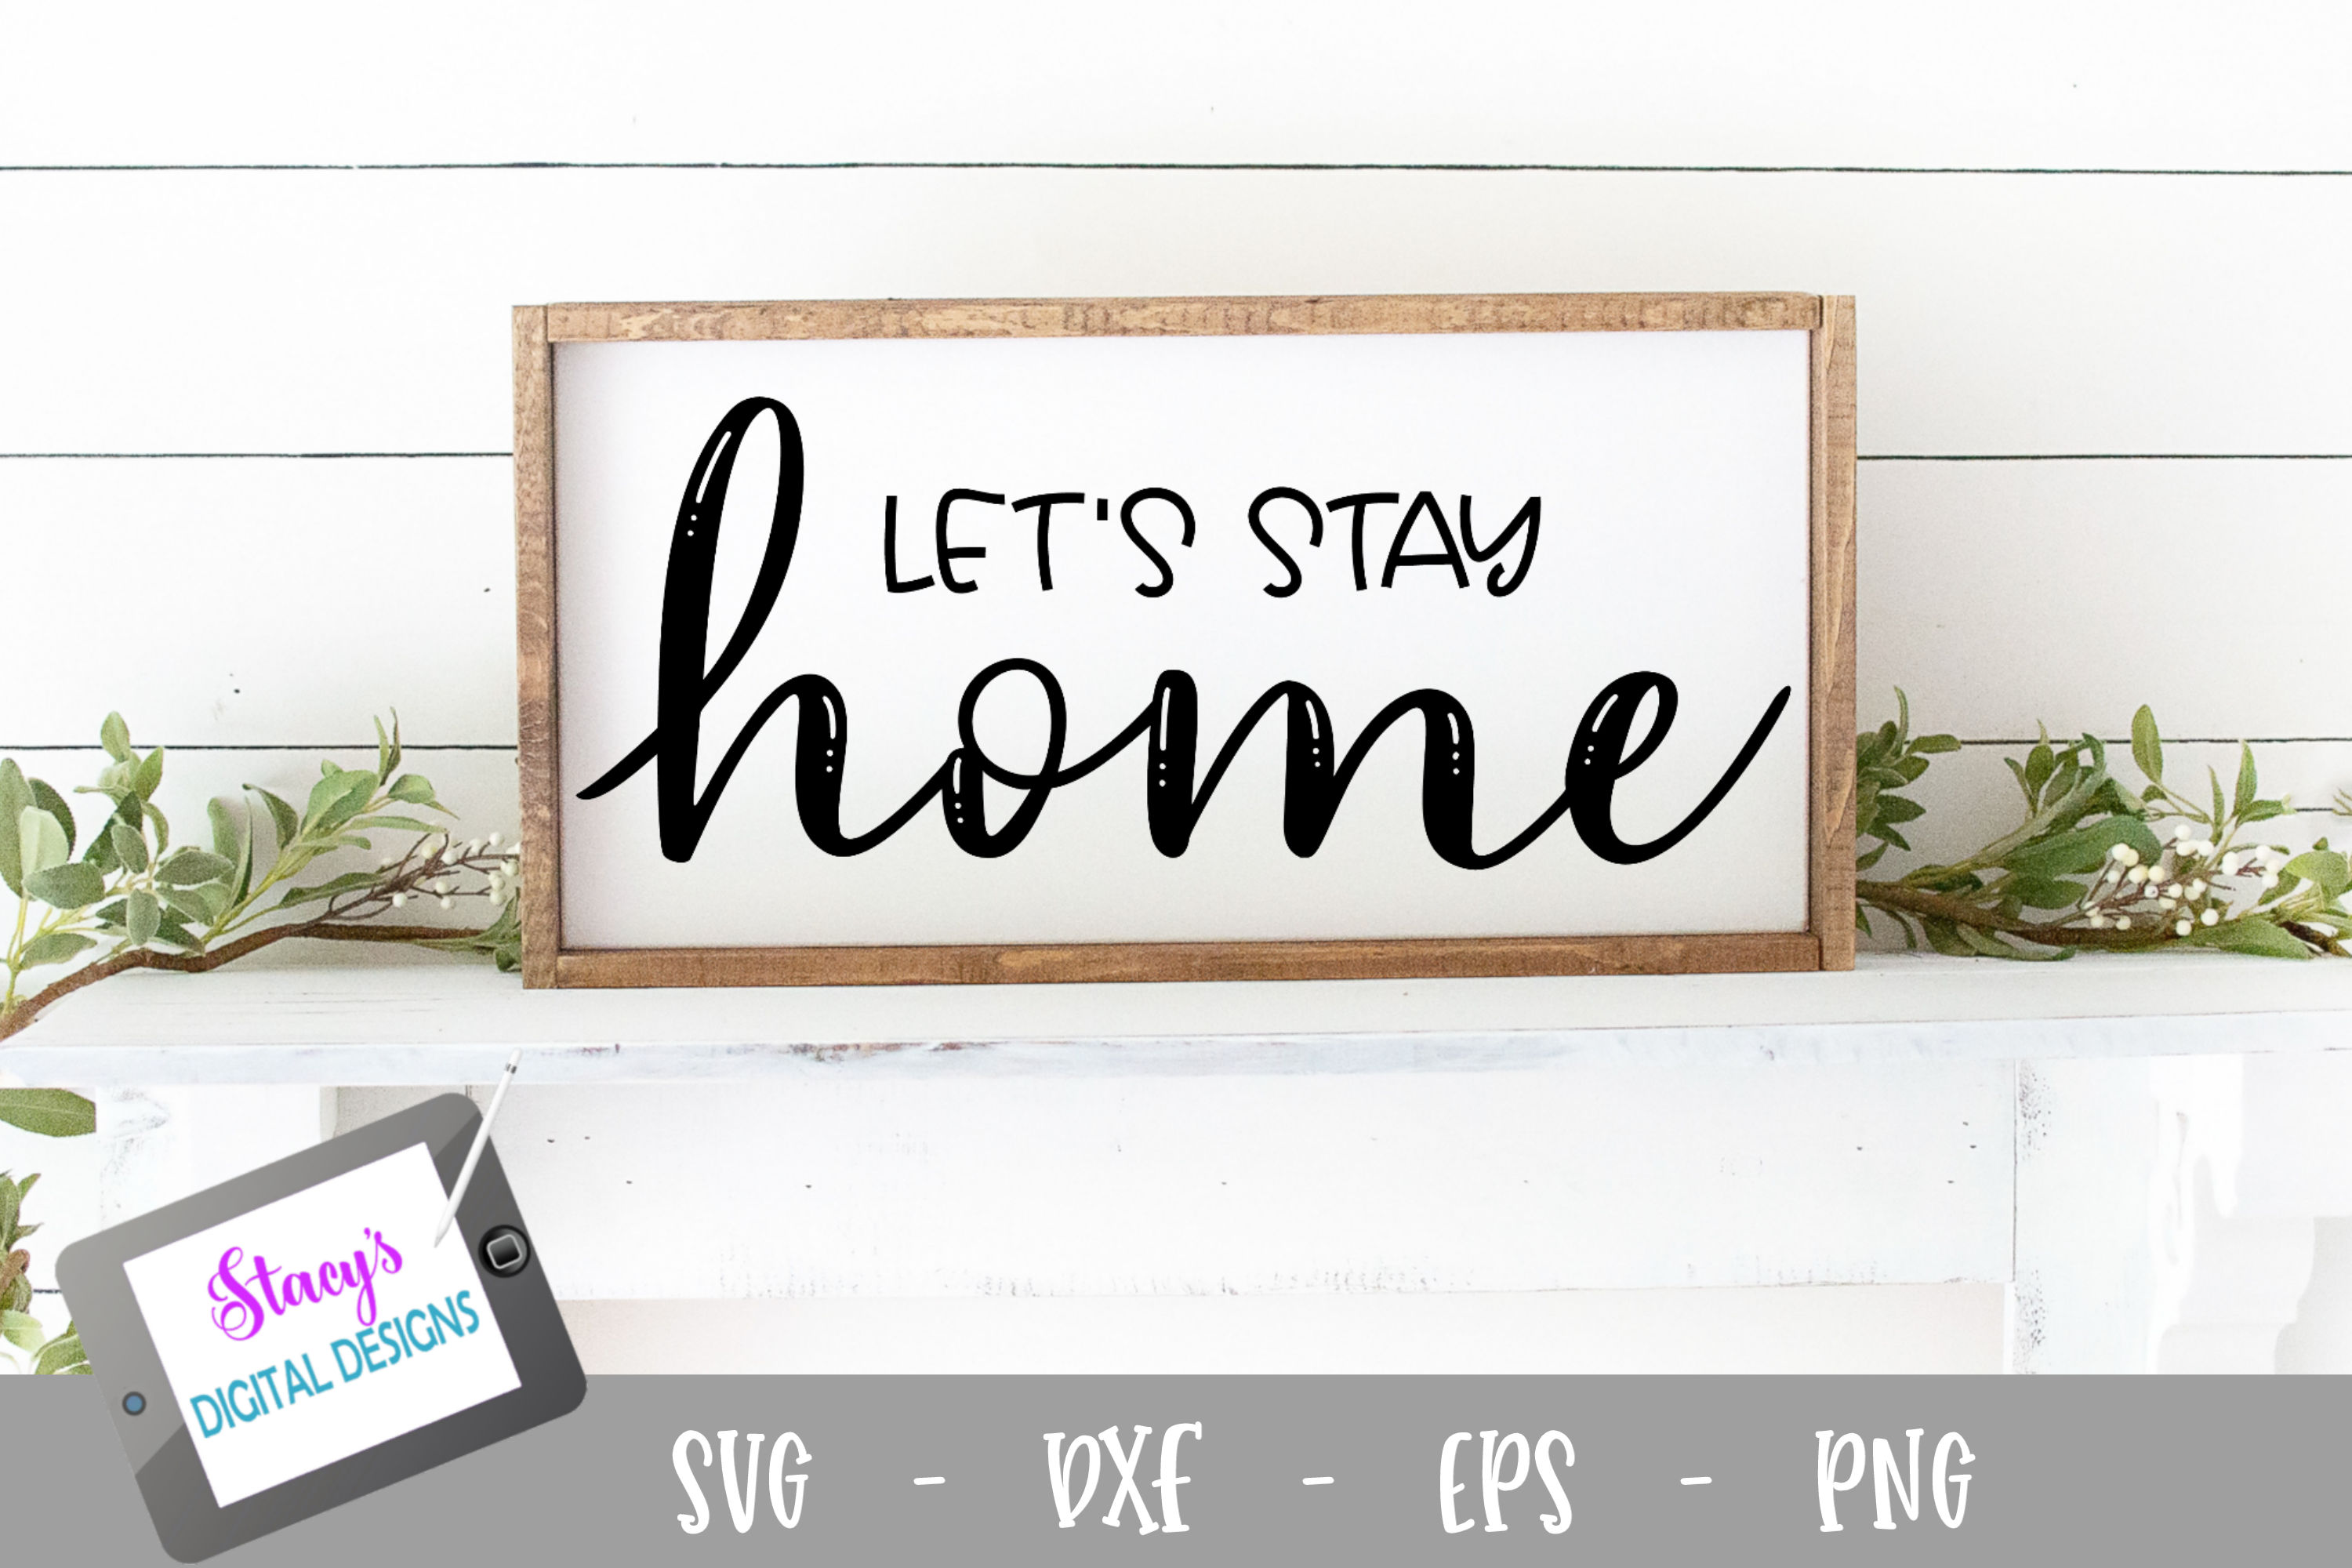 Download Free Let S Stay Home Home Design Graphic By Stacysdigitaldesigns for Cricut Explore, Silhouette and other cutting machines.